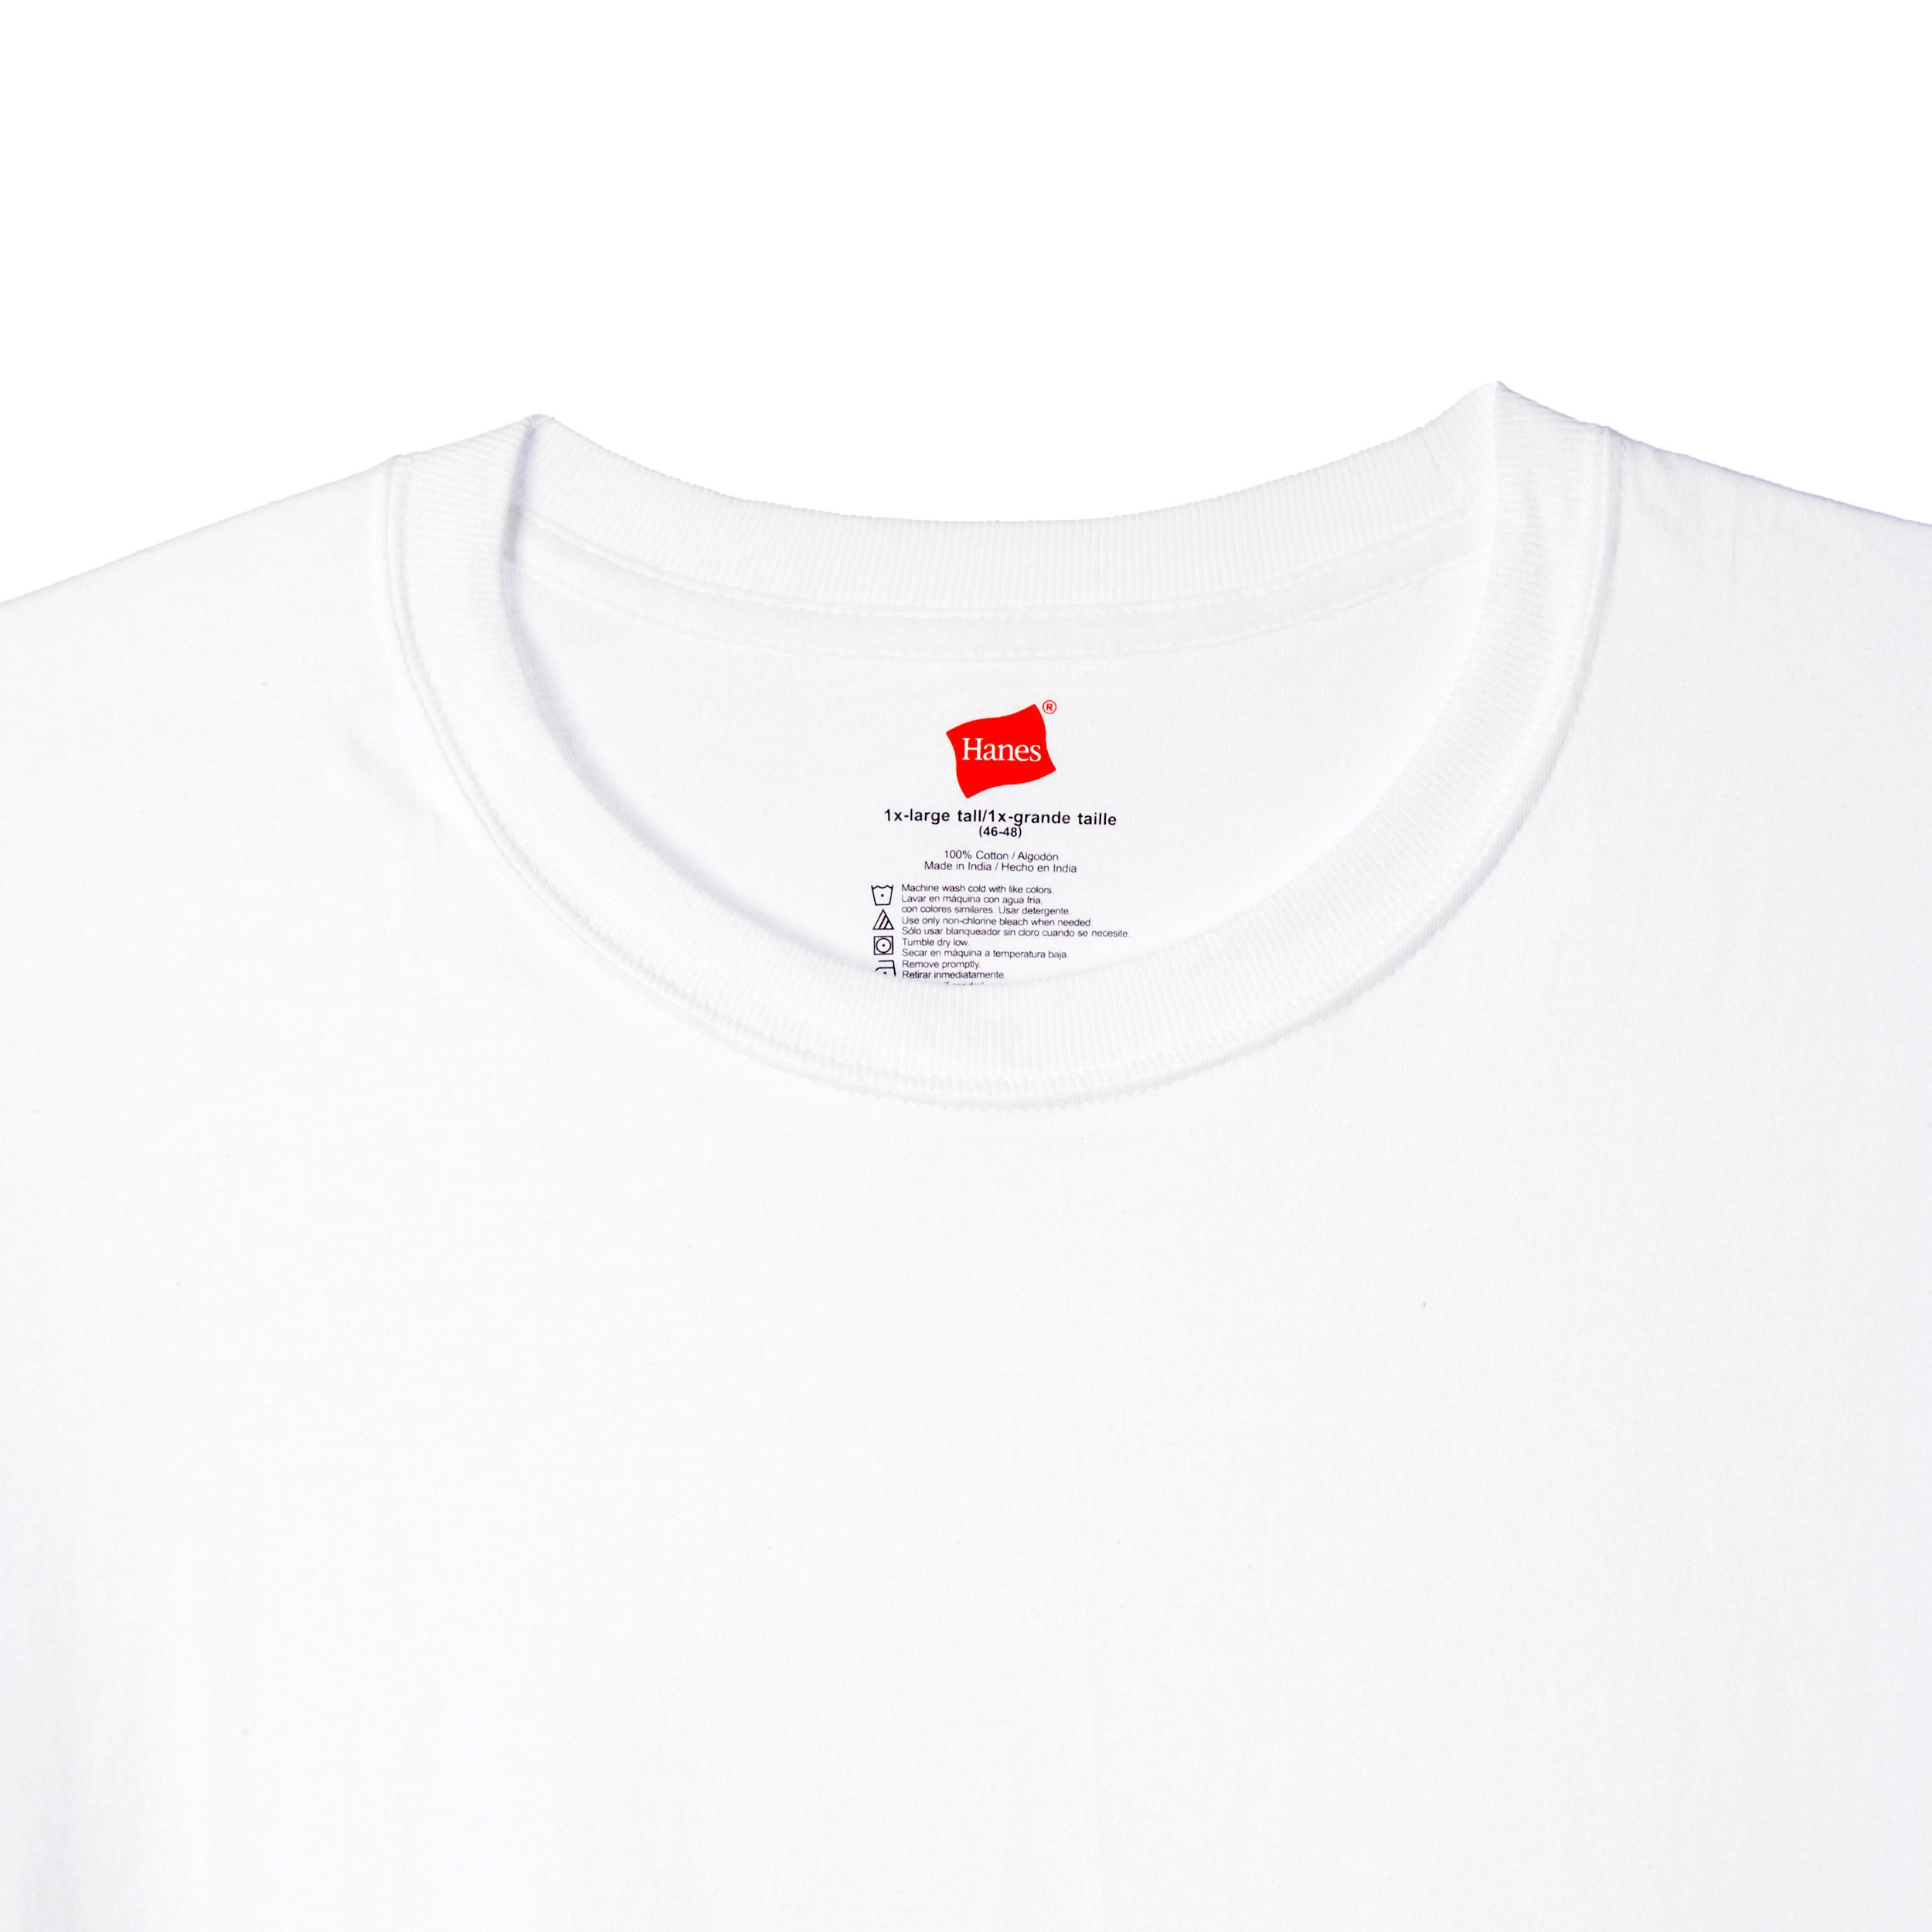 d97cf061cfa Shop Hanes Men s Big   Tall White Crew Neck Tees (Pack of 3) - Free  Shipping On Orders Over  45 - Overstock - 9051443